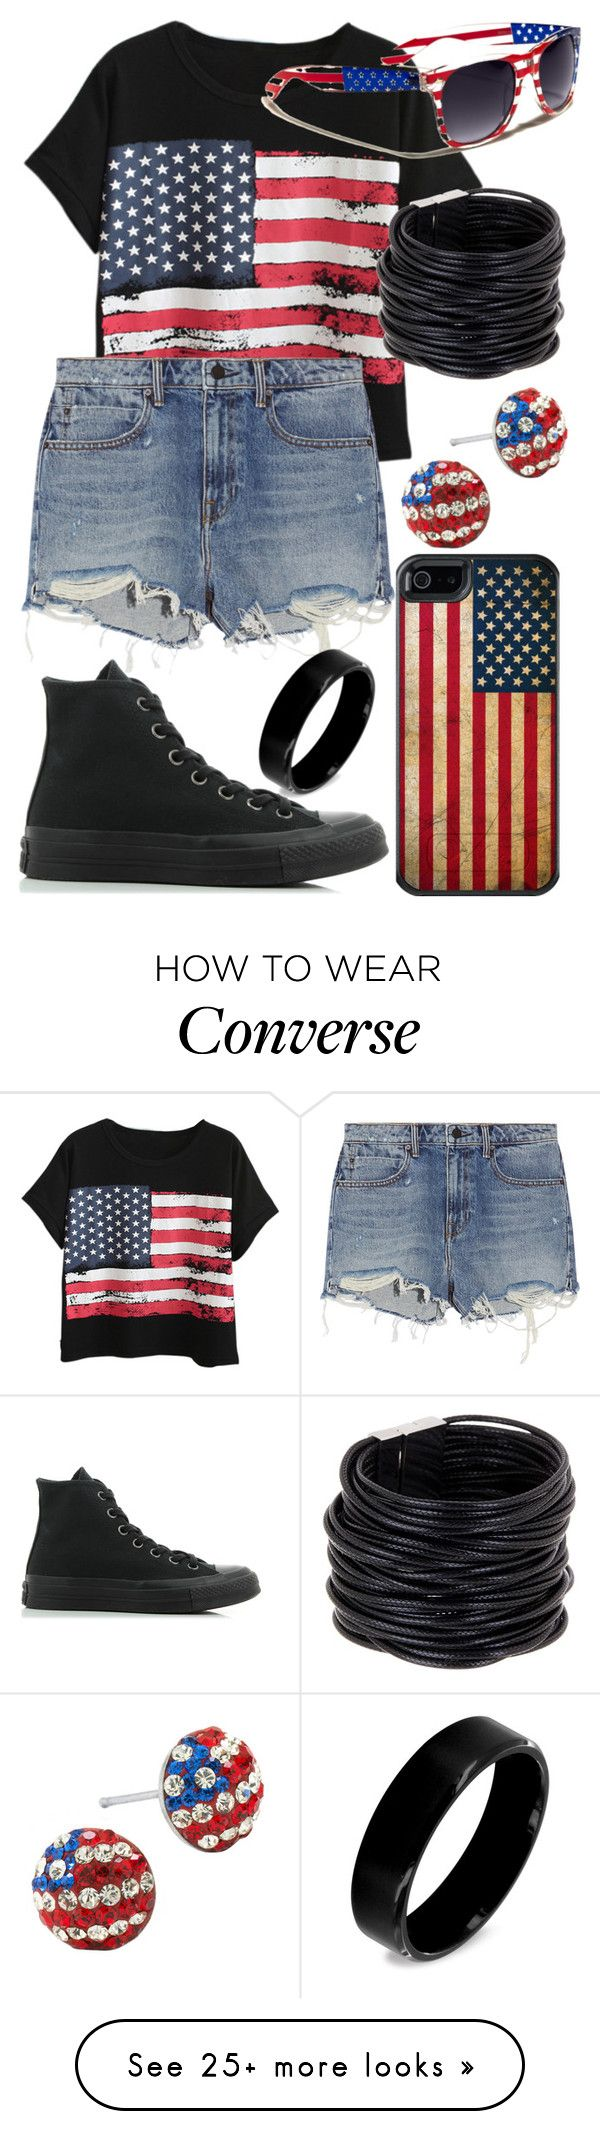 """""""Don't Wanna Be An American Idiot (Song By Green Day)"""" by arithegeek11 on Polyvore featuring Chicnova Fashion, Alexander Wang, Converse, OtterBox, Saachi and West Coast Jewelry"""